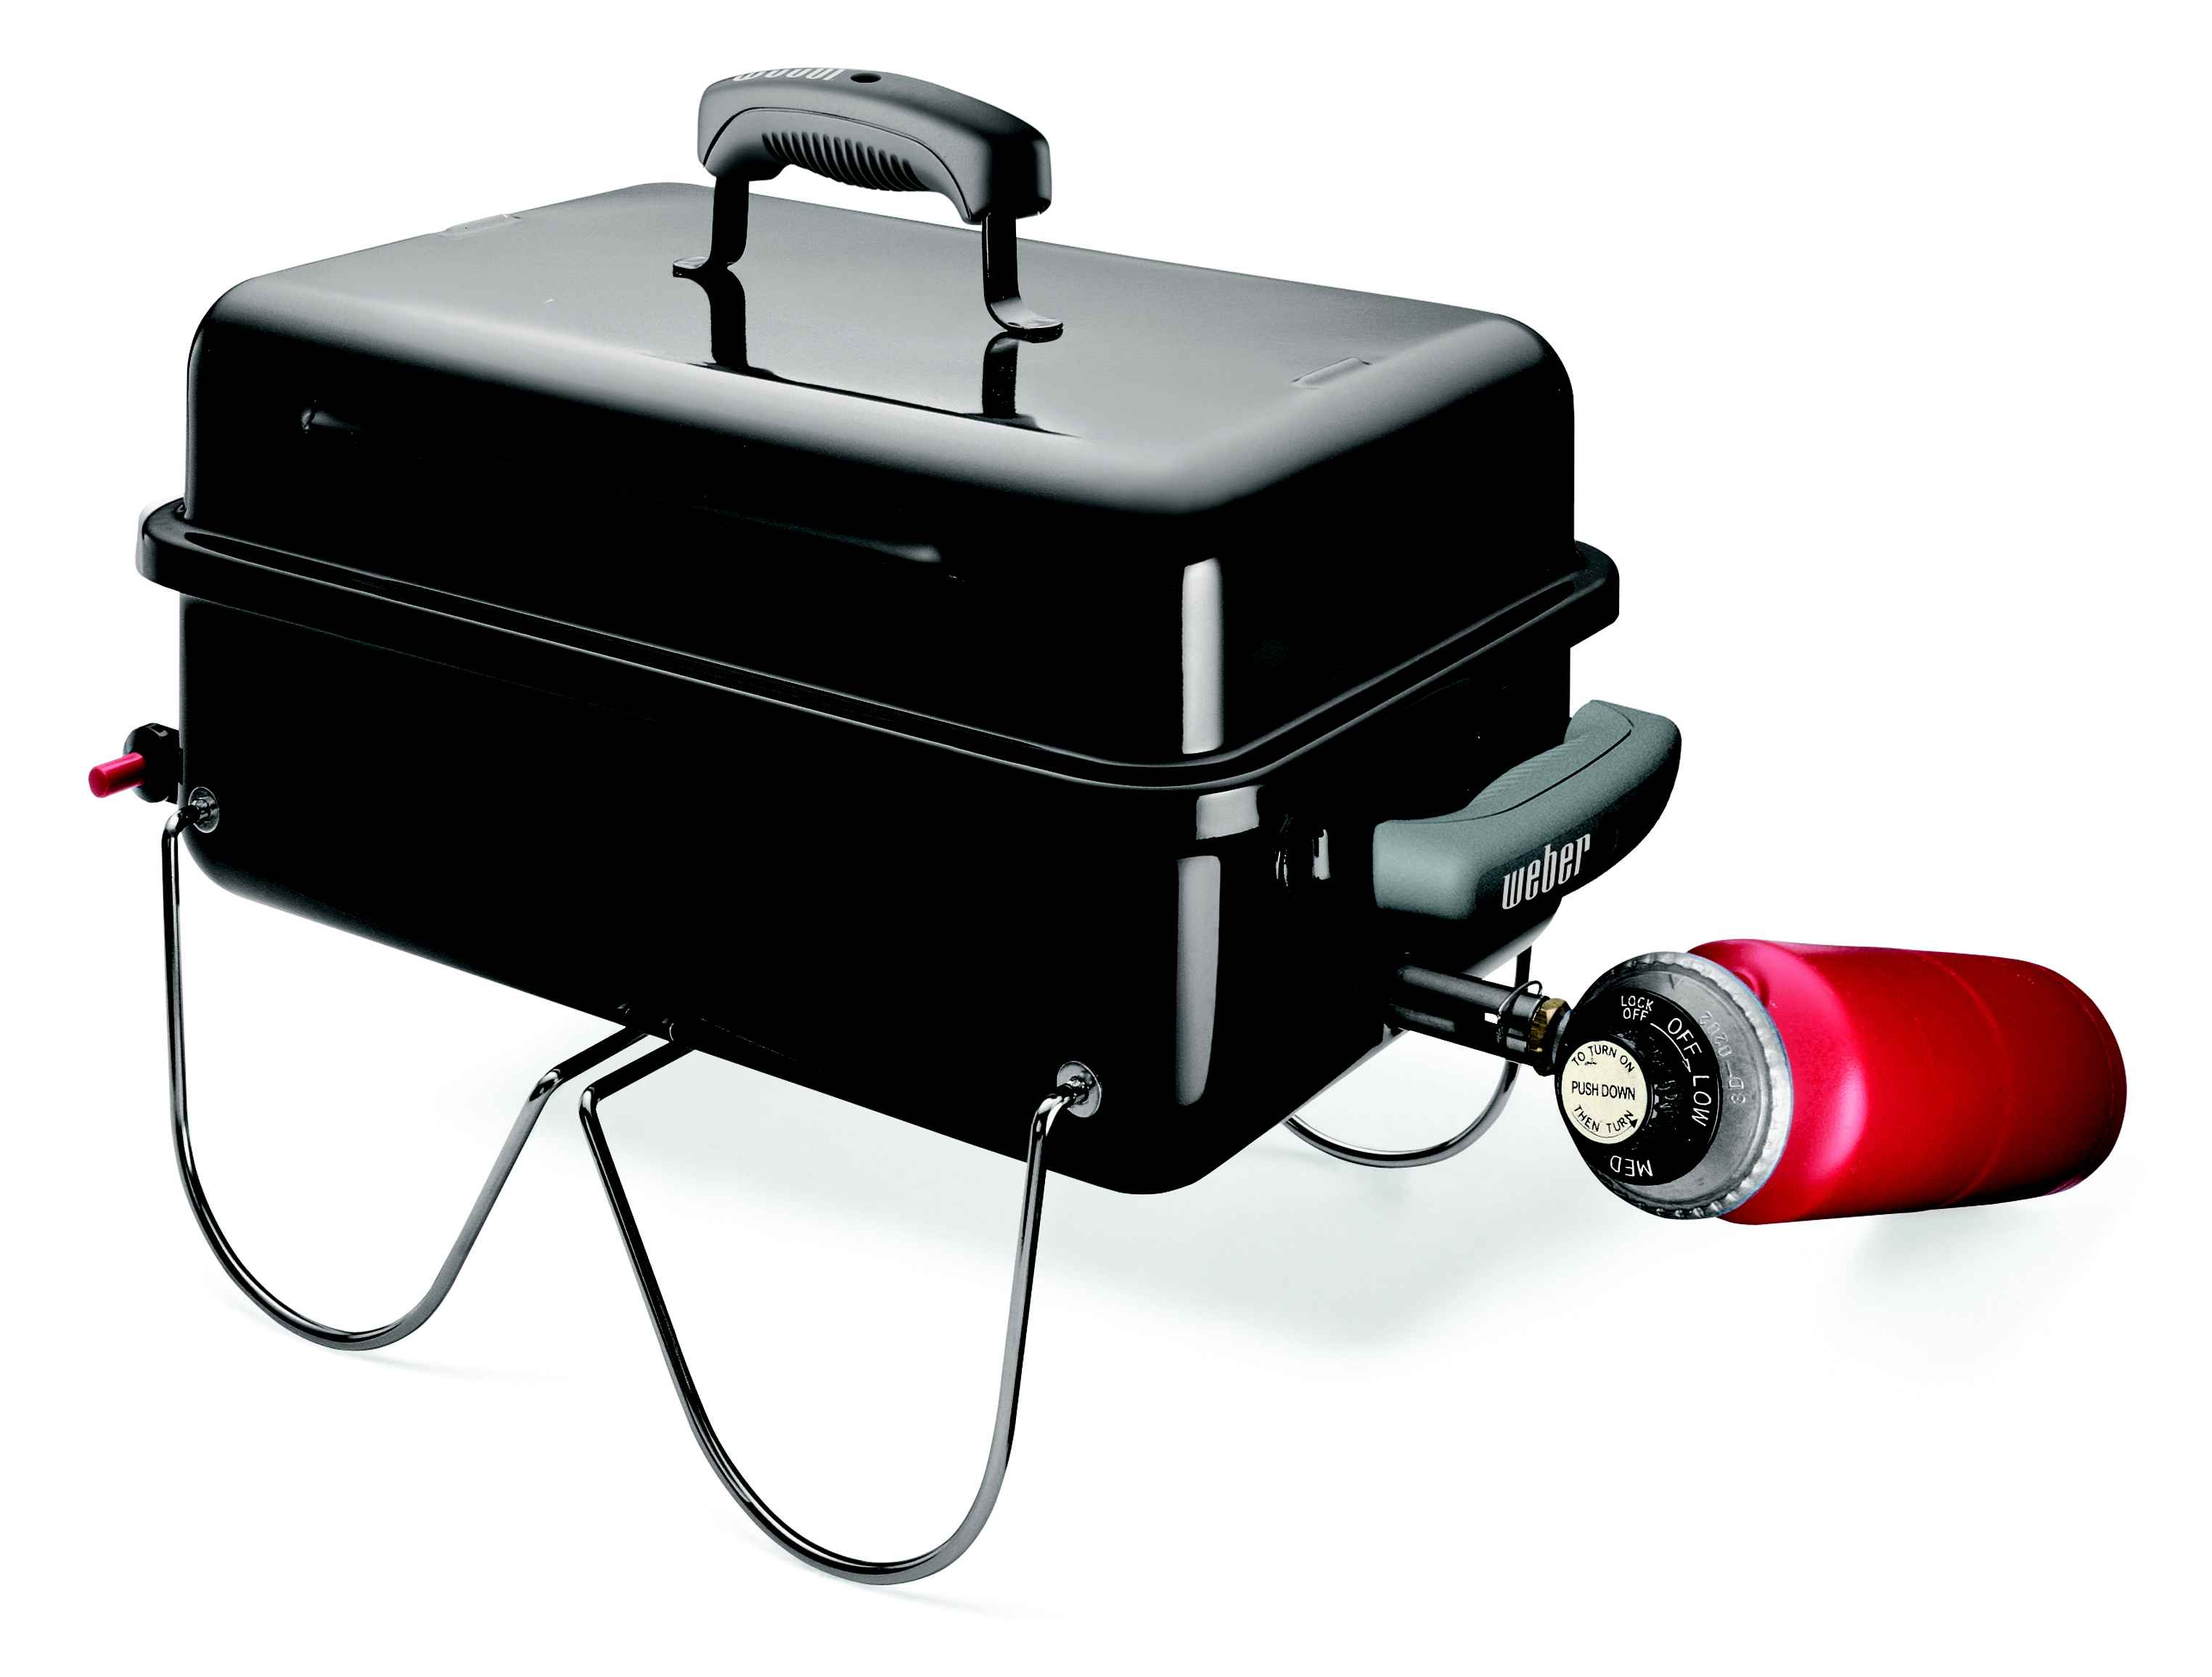 Luxury home depot electric grill weber insured by ross